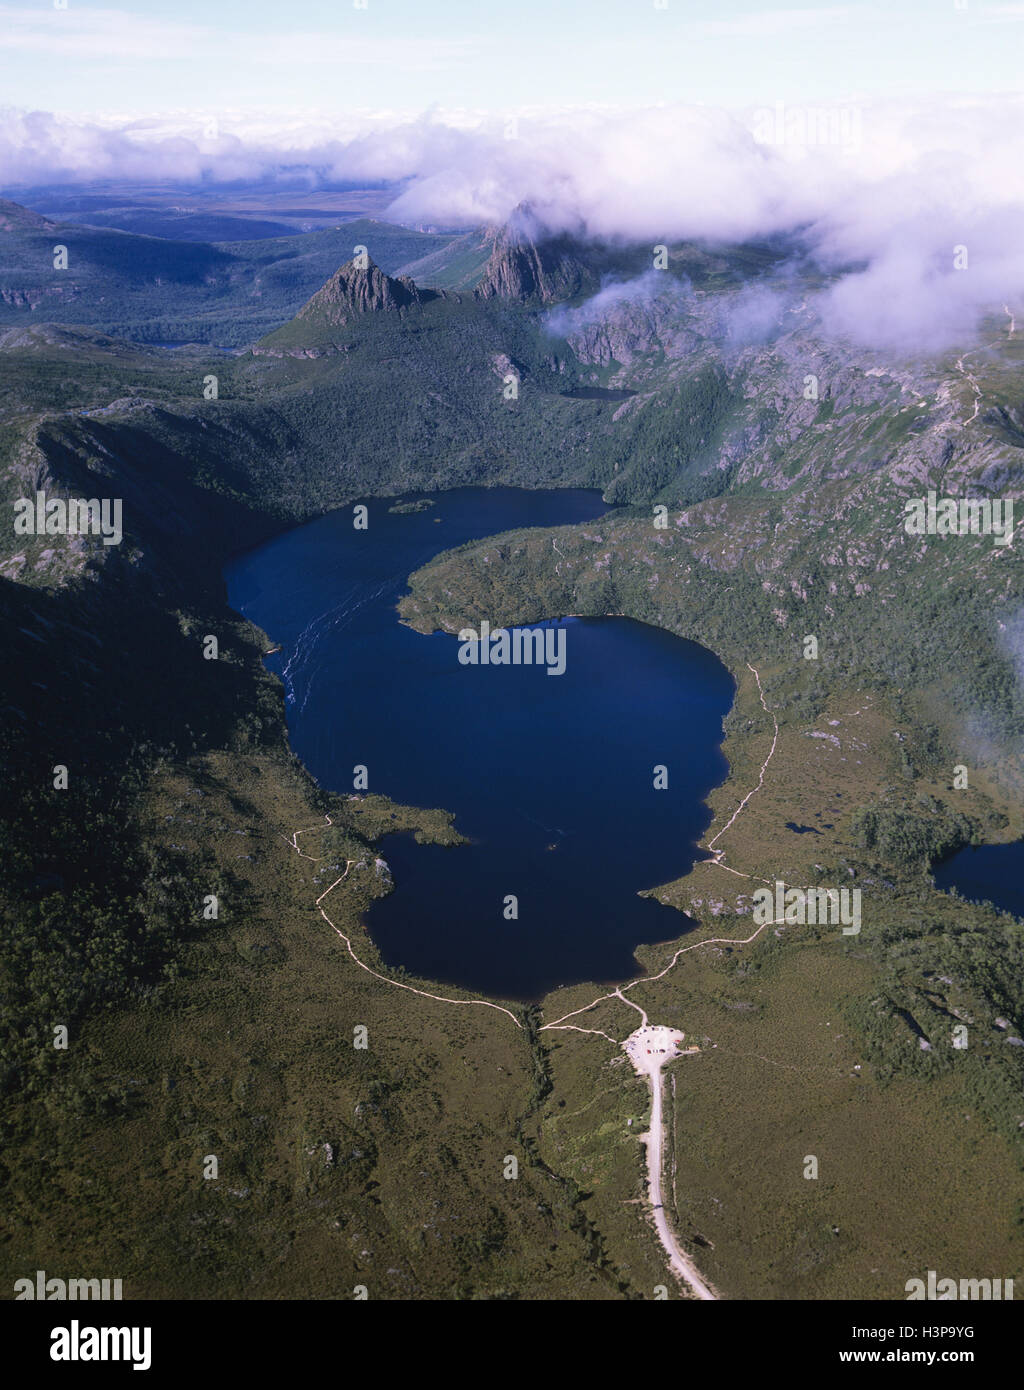 Cradle Mountain and Lake Dove from the air - Stock Image